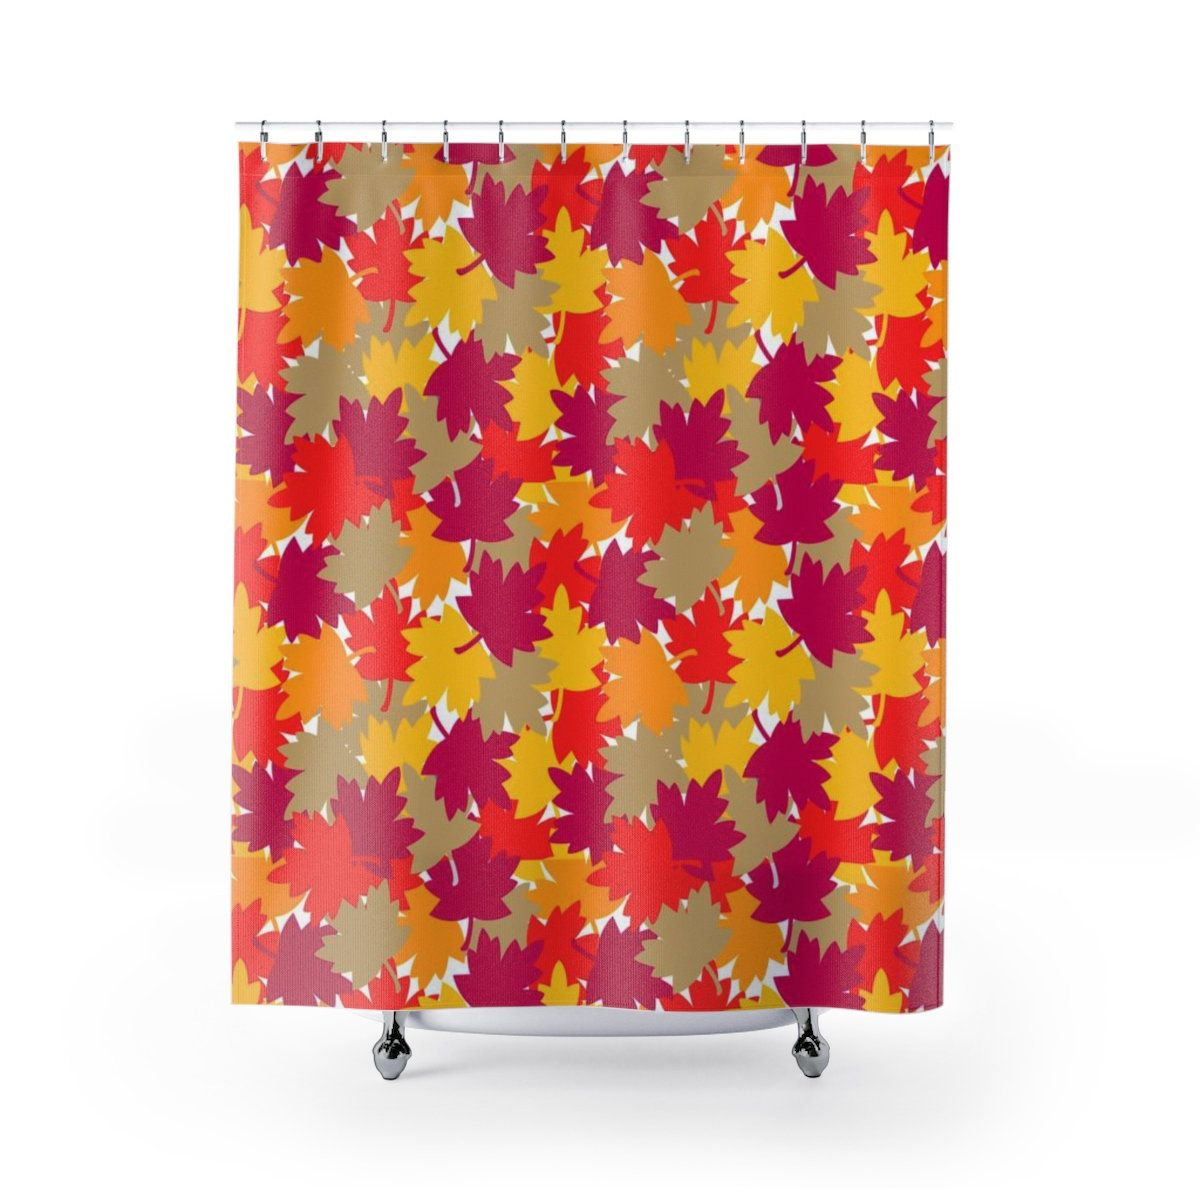 Fall Autumn Leaves Shower Curtain Bathroom Home Decor Red Orange